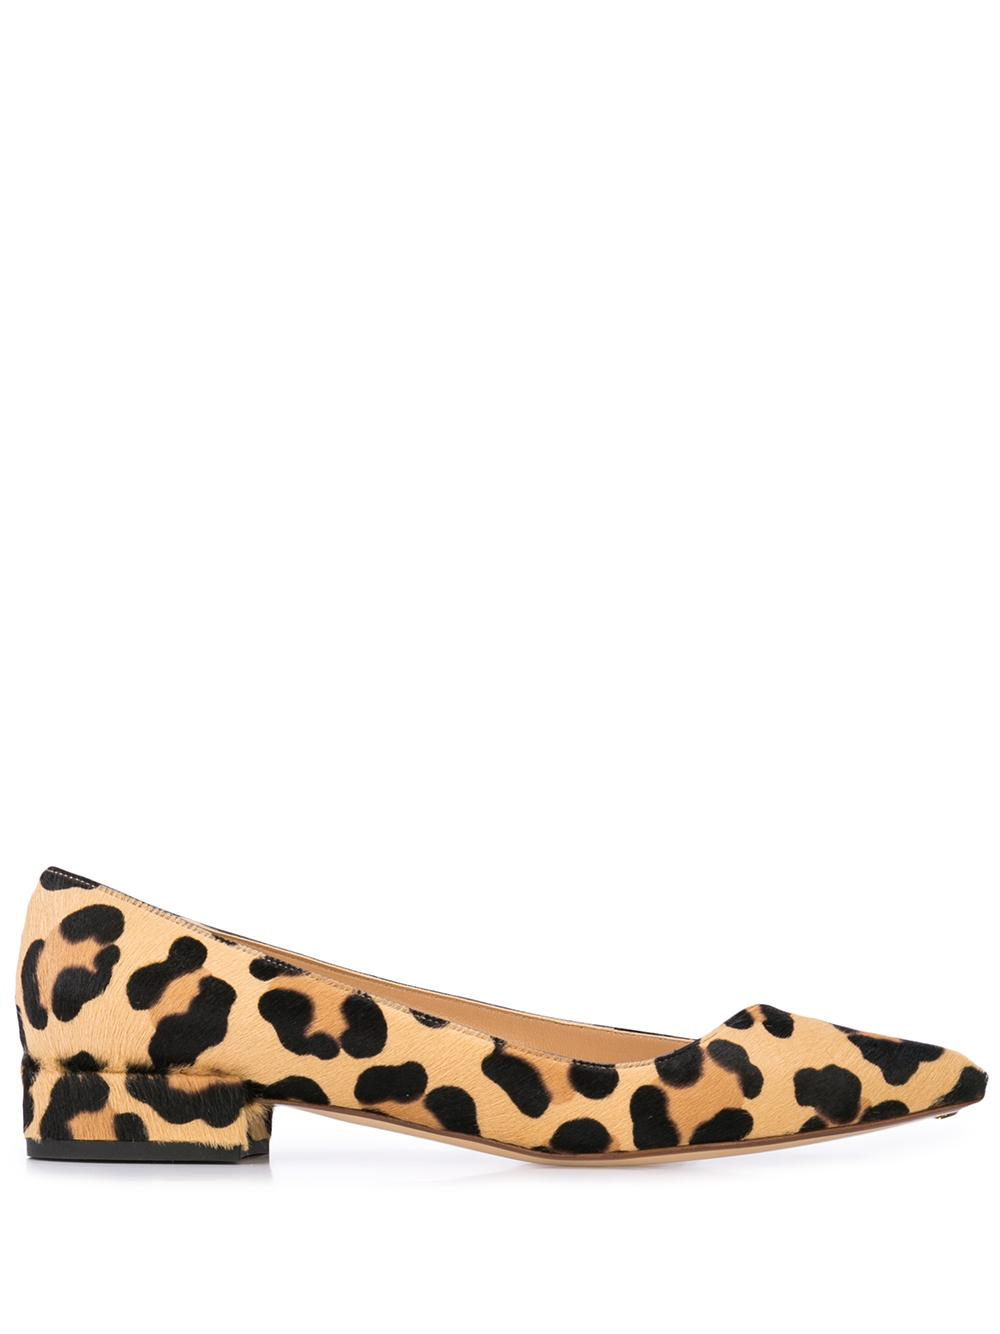 Leopard Pony Pointed Toe 20mm Flat Item # R1P283-205